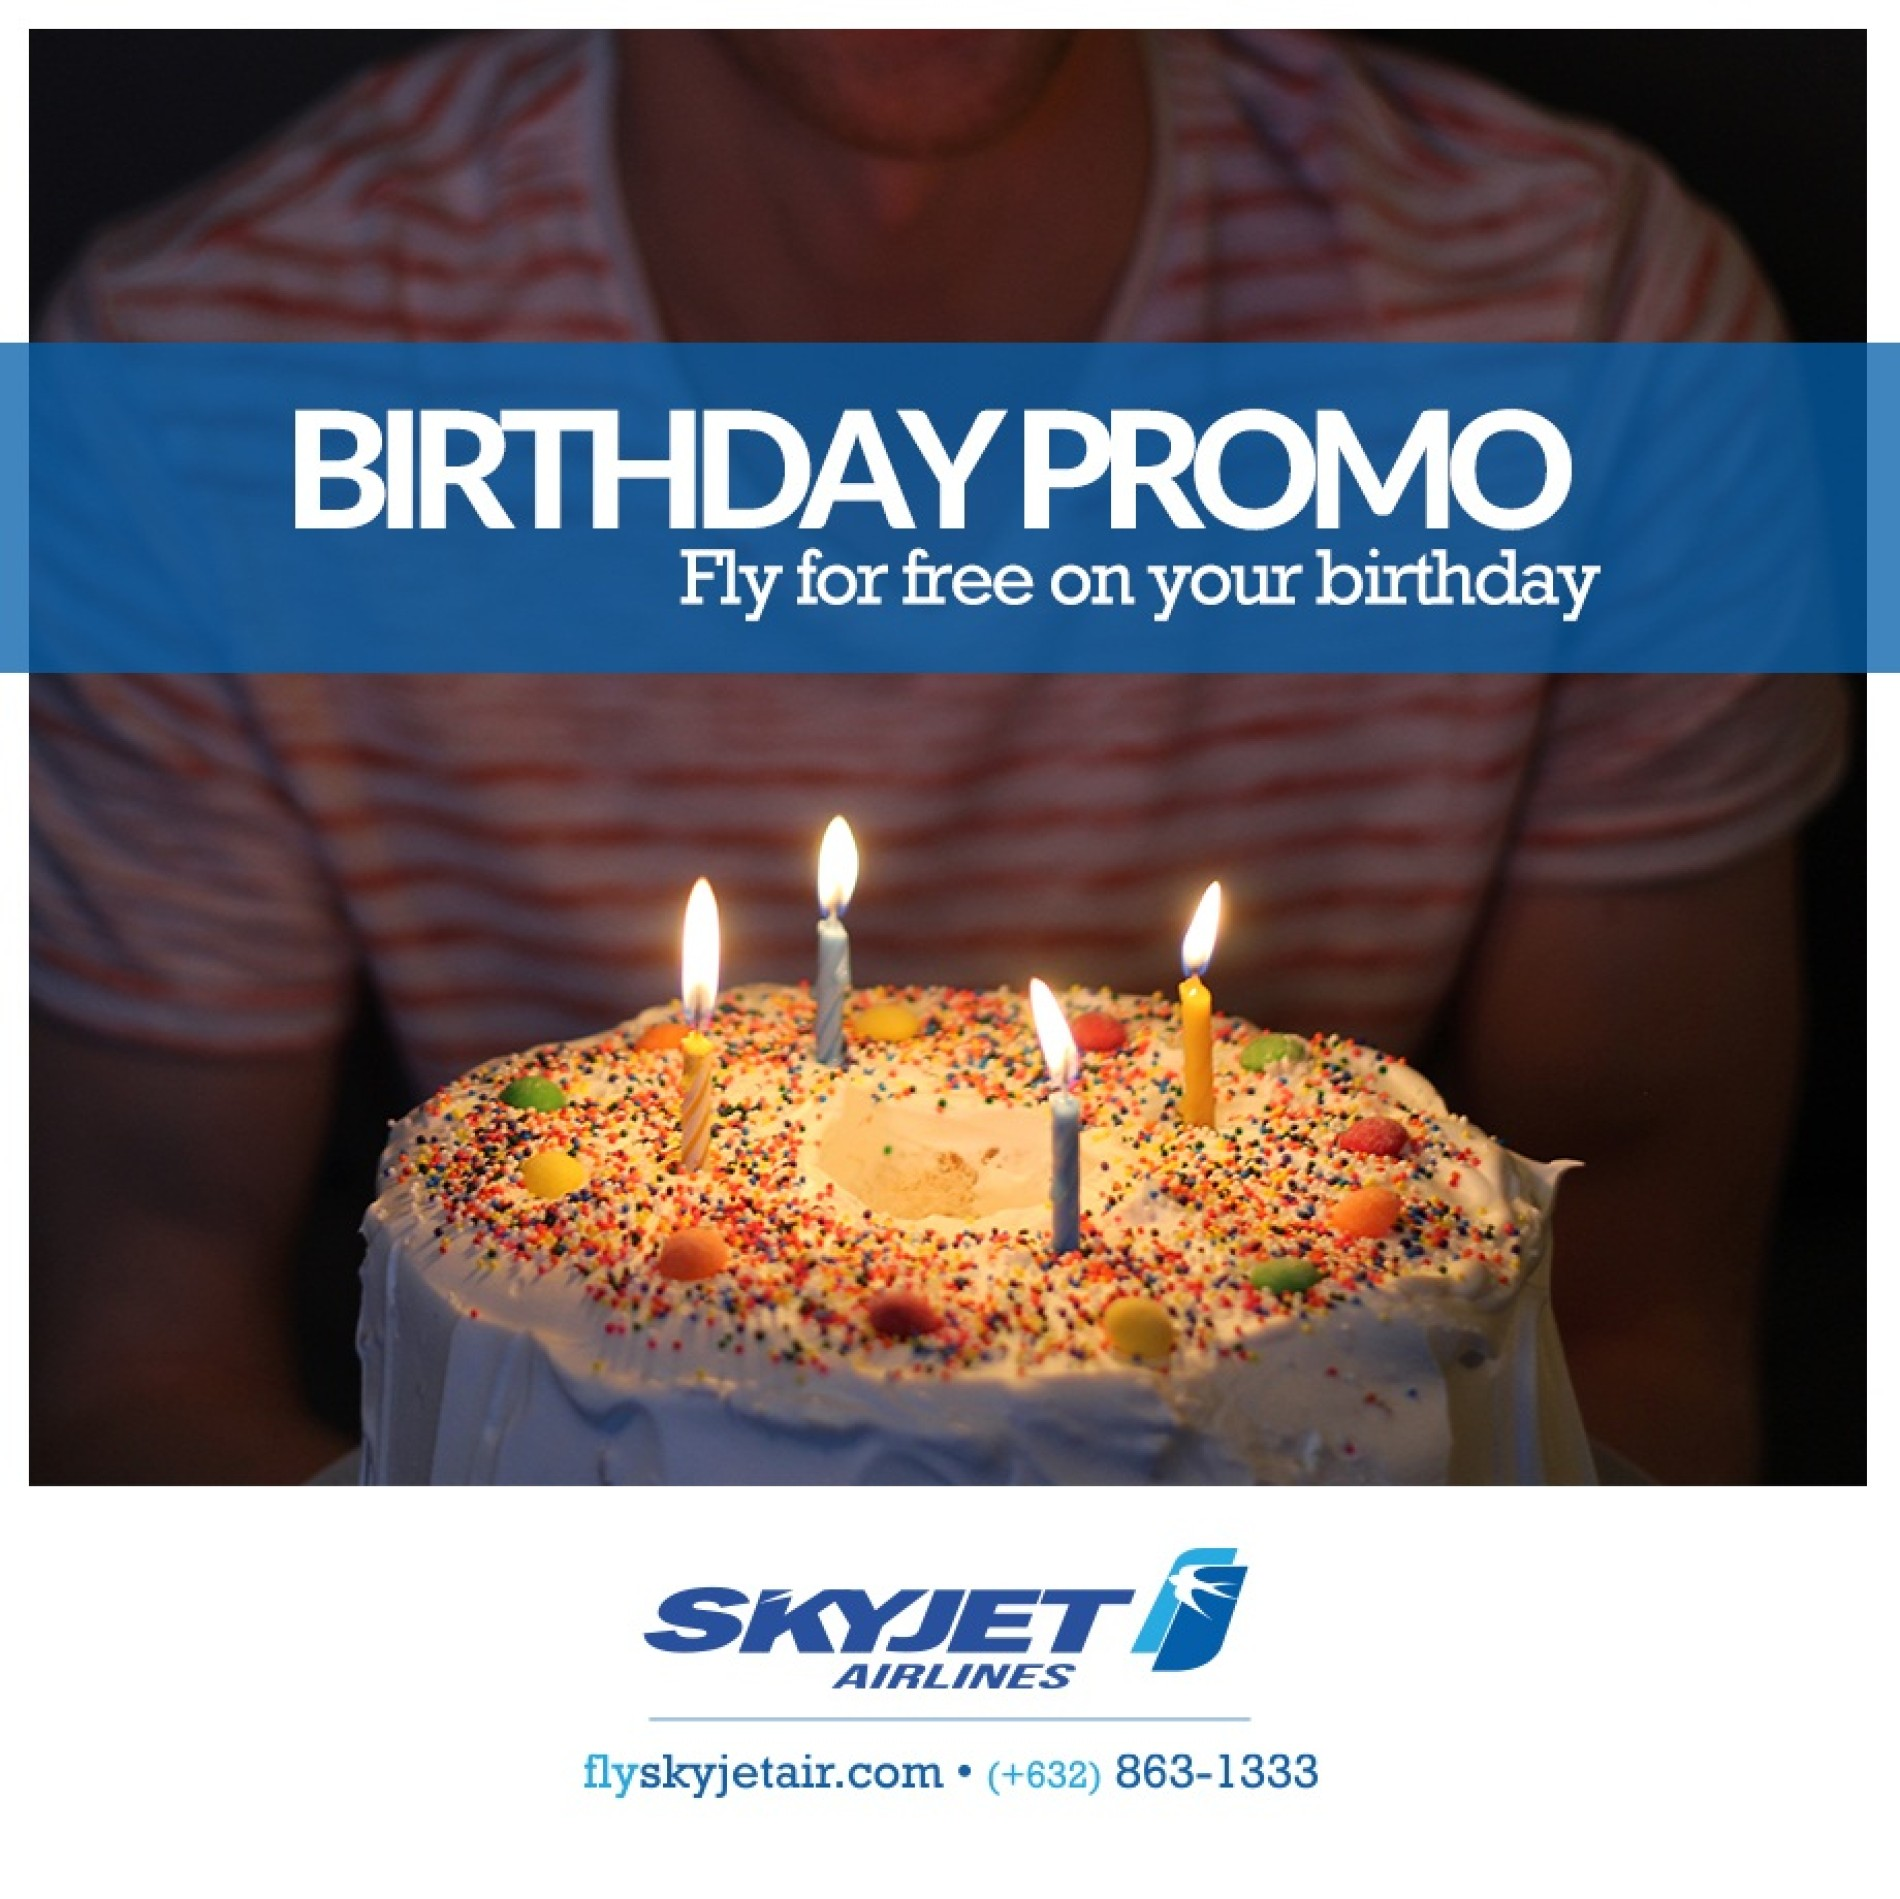 SKYJET Airlines Birthday Promo  FREE fly for on your Birthday